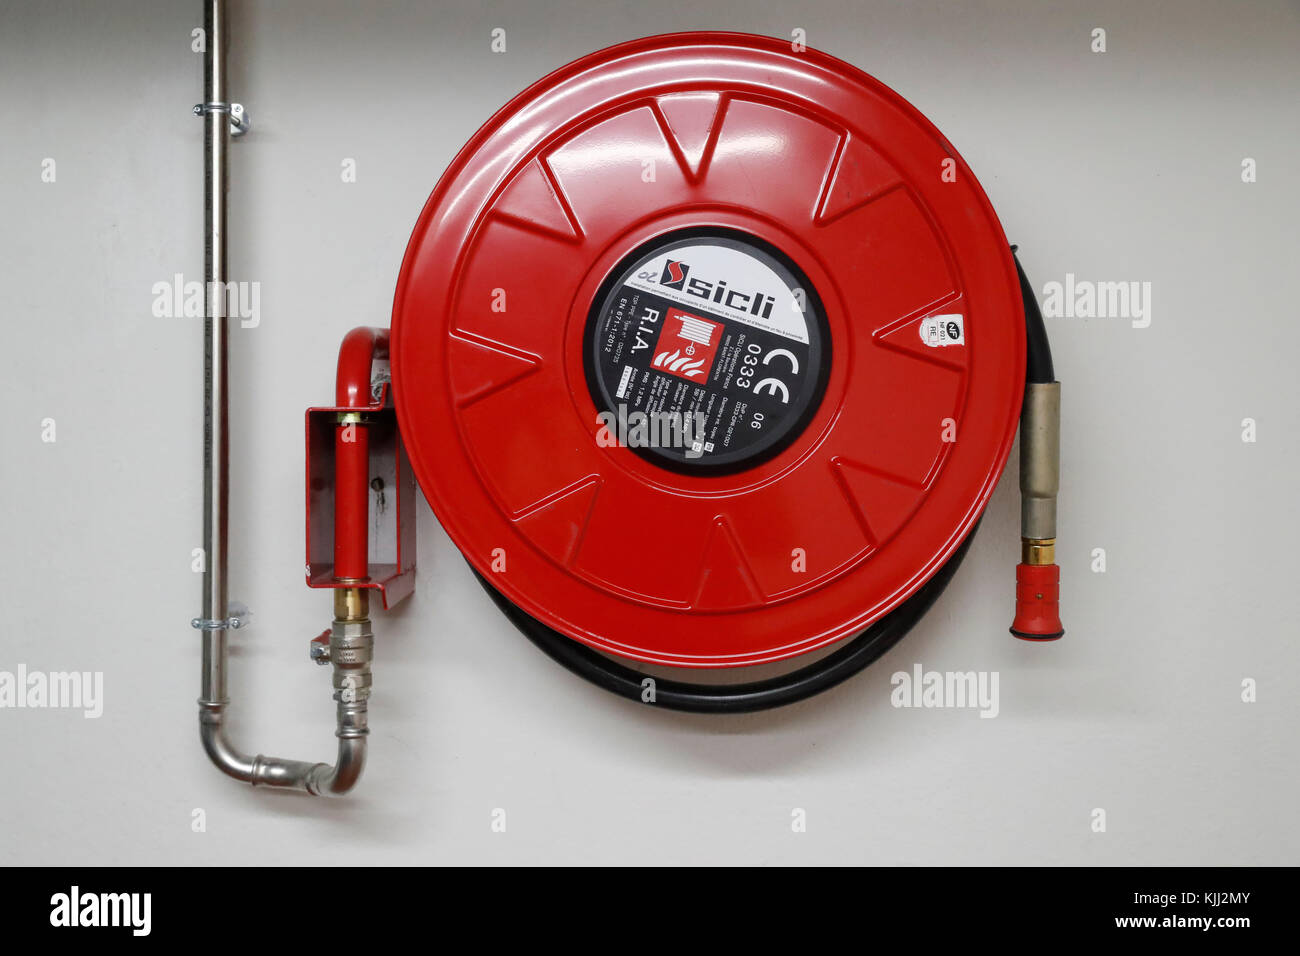 Fire Hose Attached To Pipeline In Hotel.  France. - Stock Image